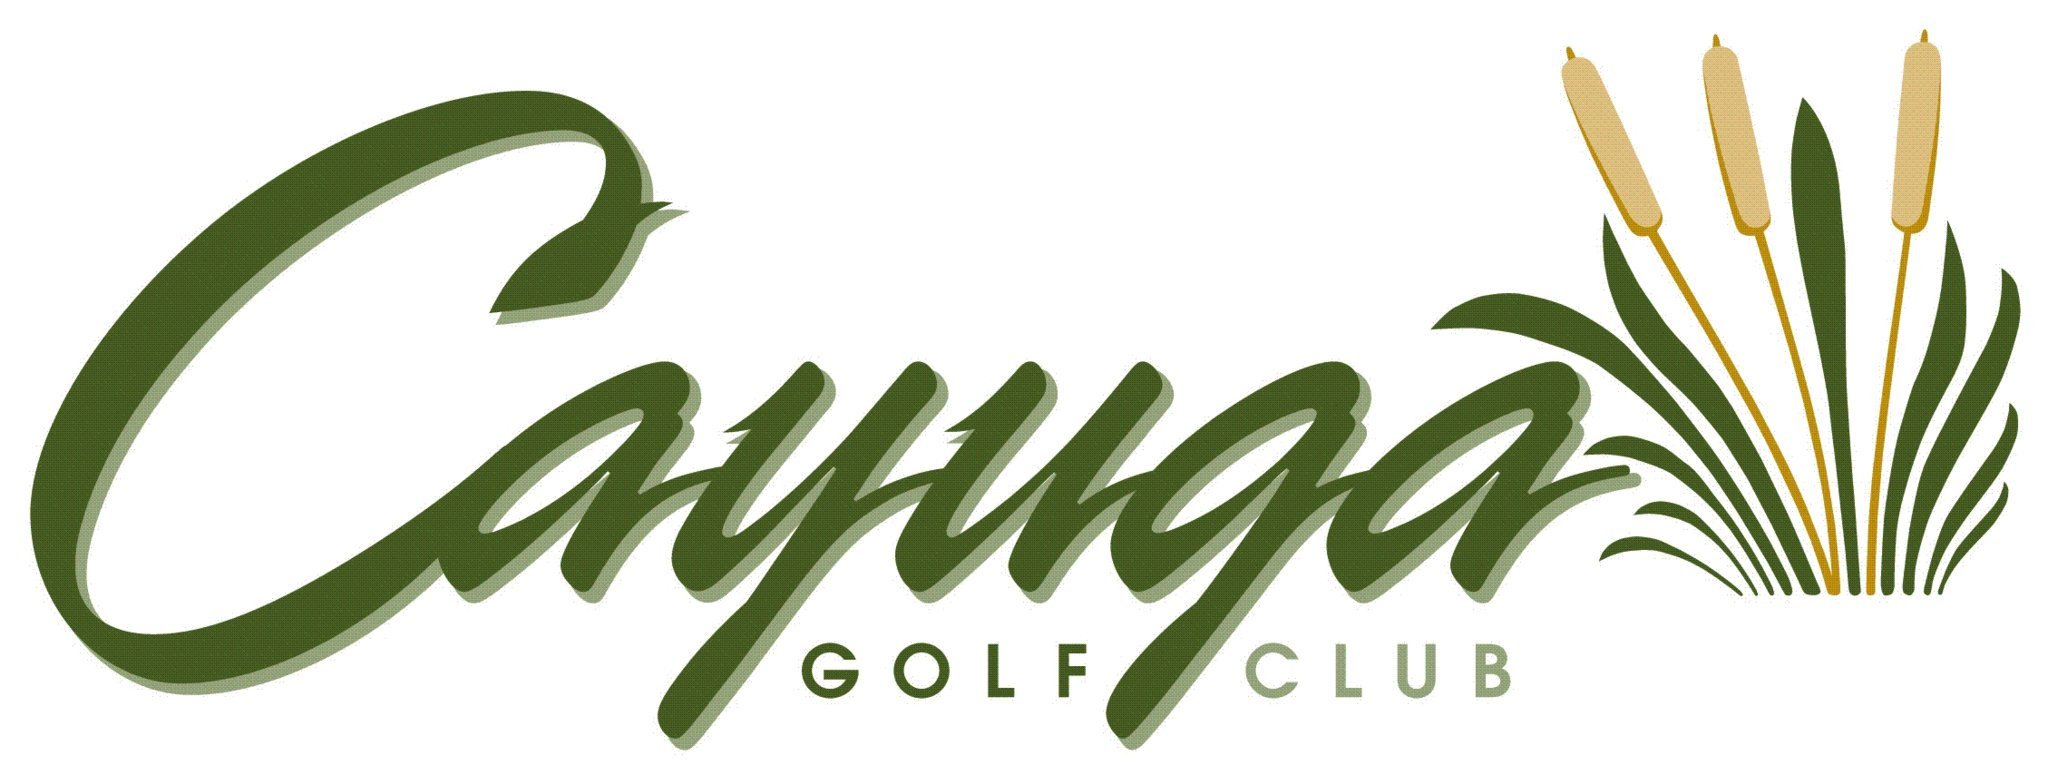 Cayuga Golf Club